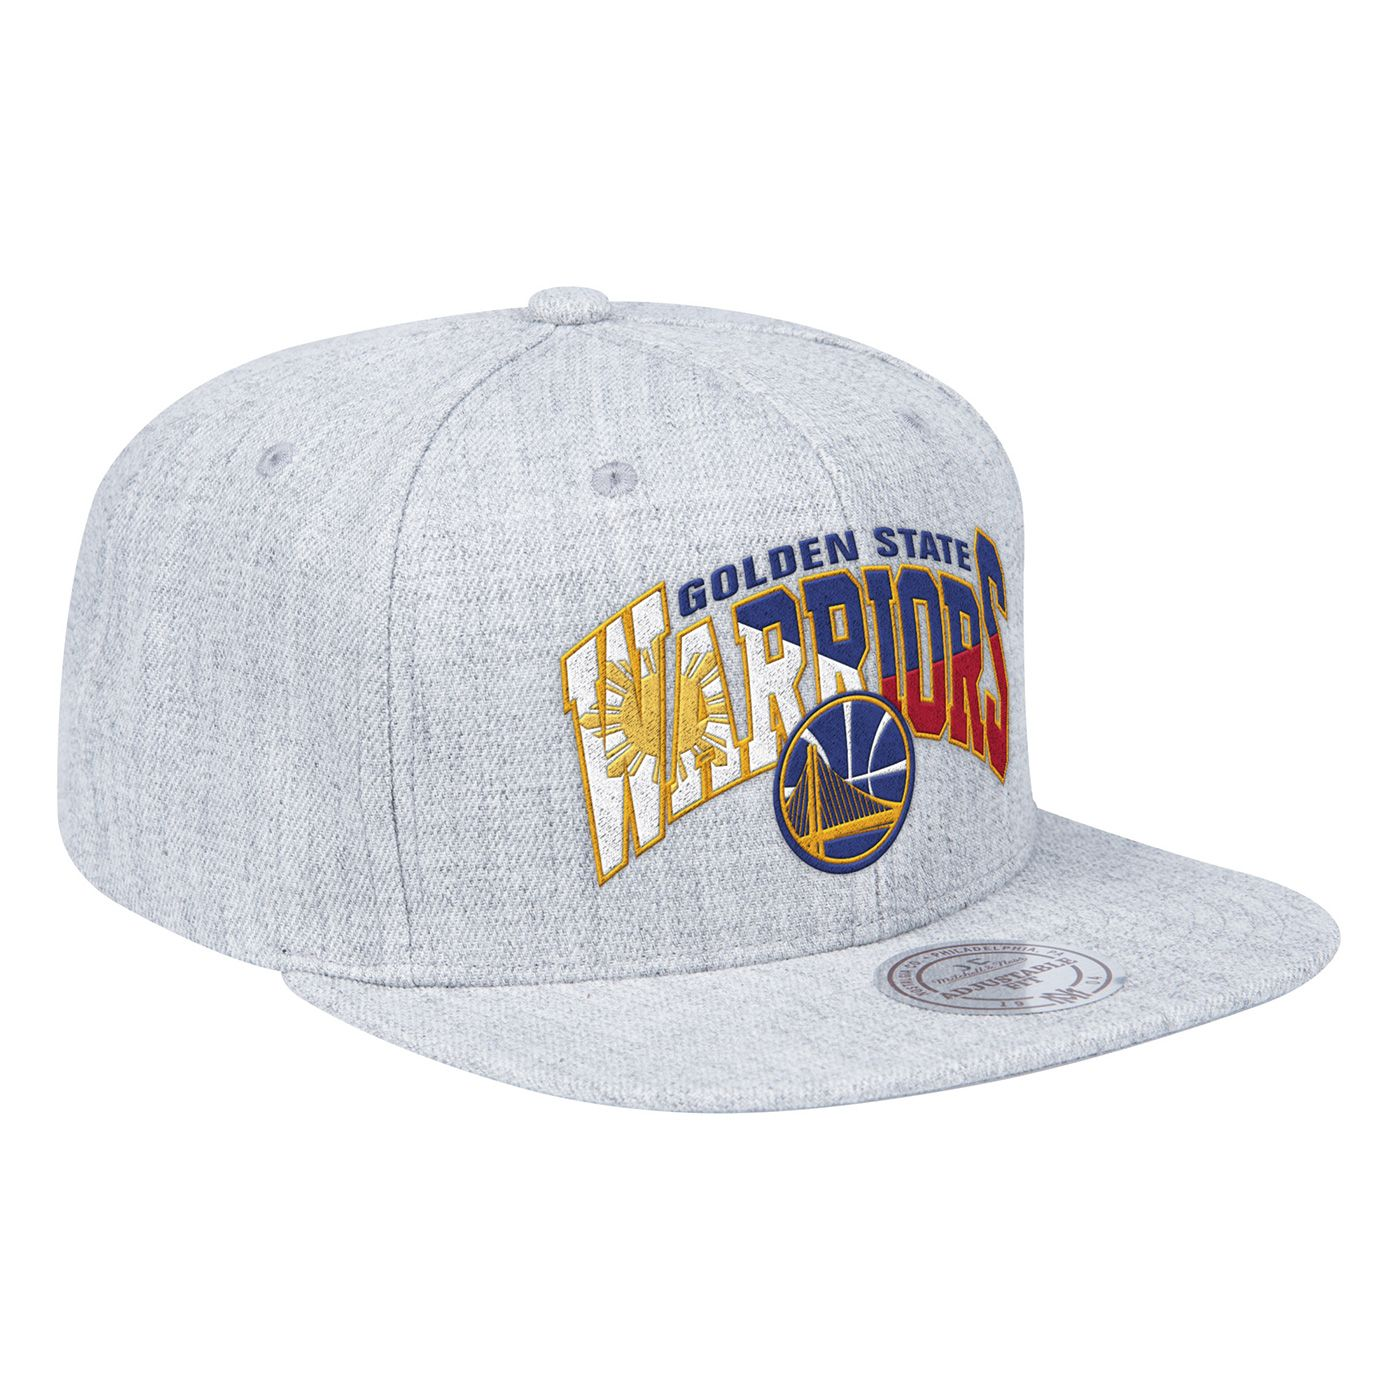 newest 9c3a3 fde46 Golden State Warriors Mitchell   Ness Filipino Heritage Hardwood Classics  Flat Brim Snapback Hat - Grey - Golden State Warriors - Official Online  Store